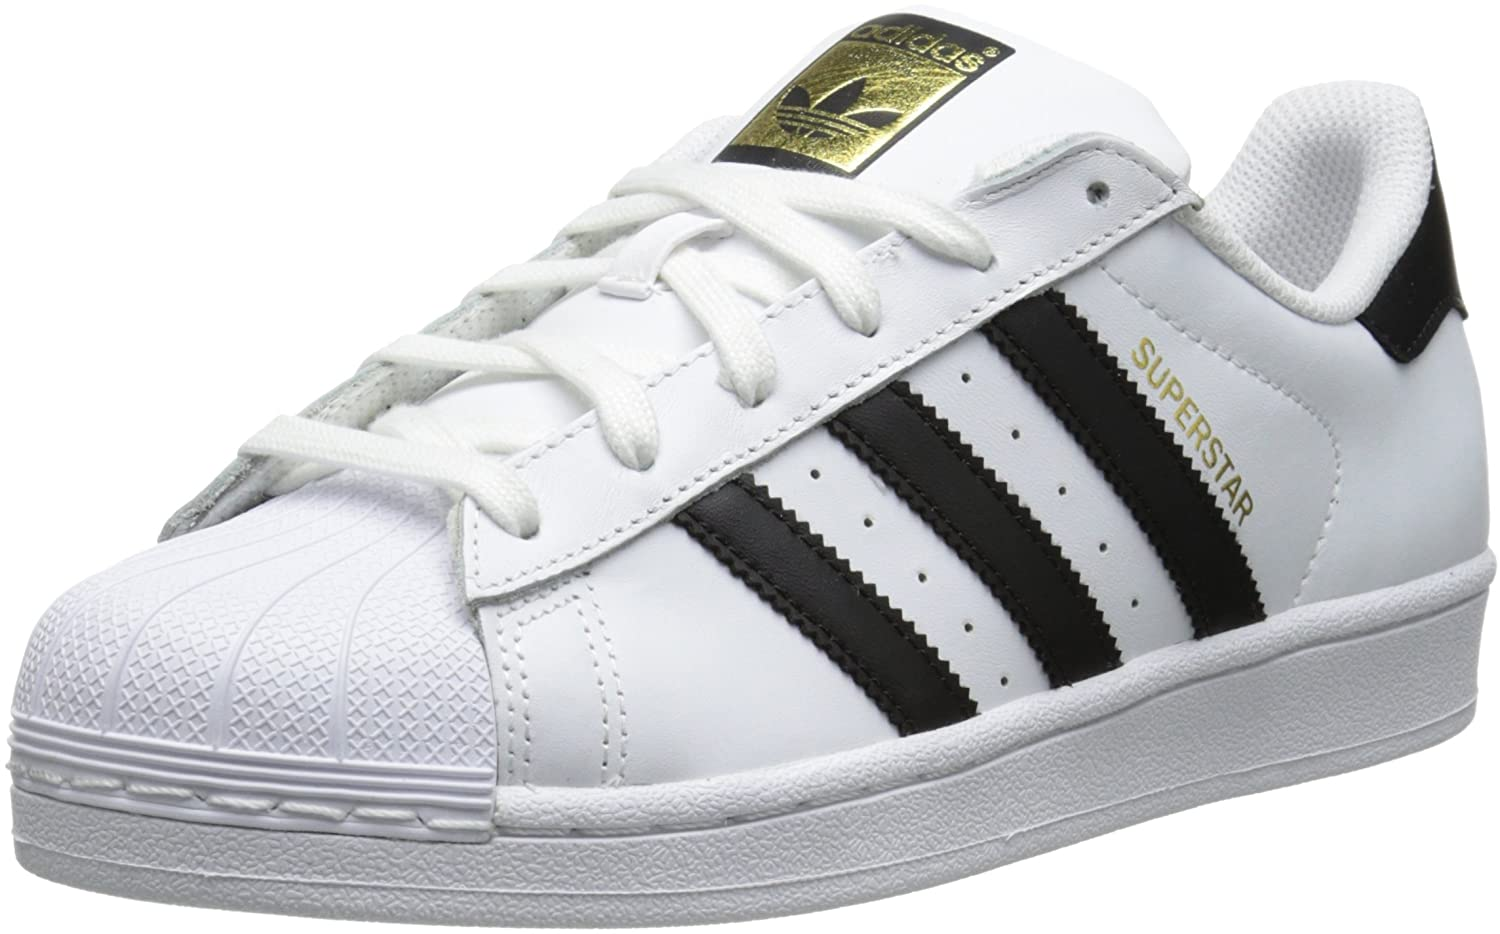 321b7a0d6d7 Adidas ORIGINALS Women s Superstar Shoe